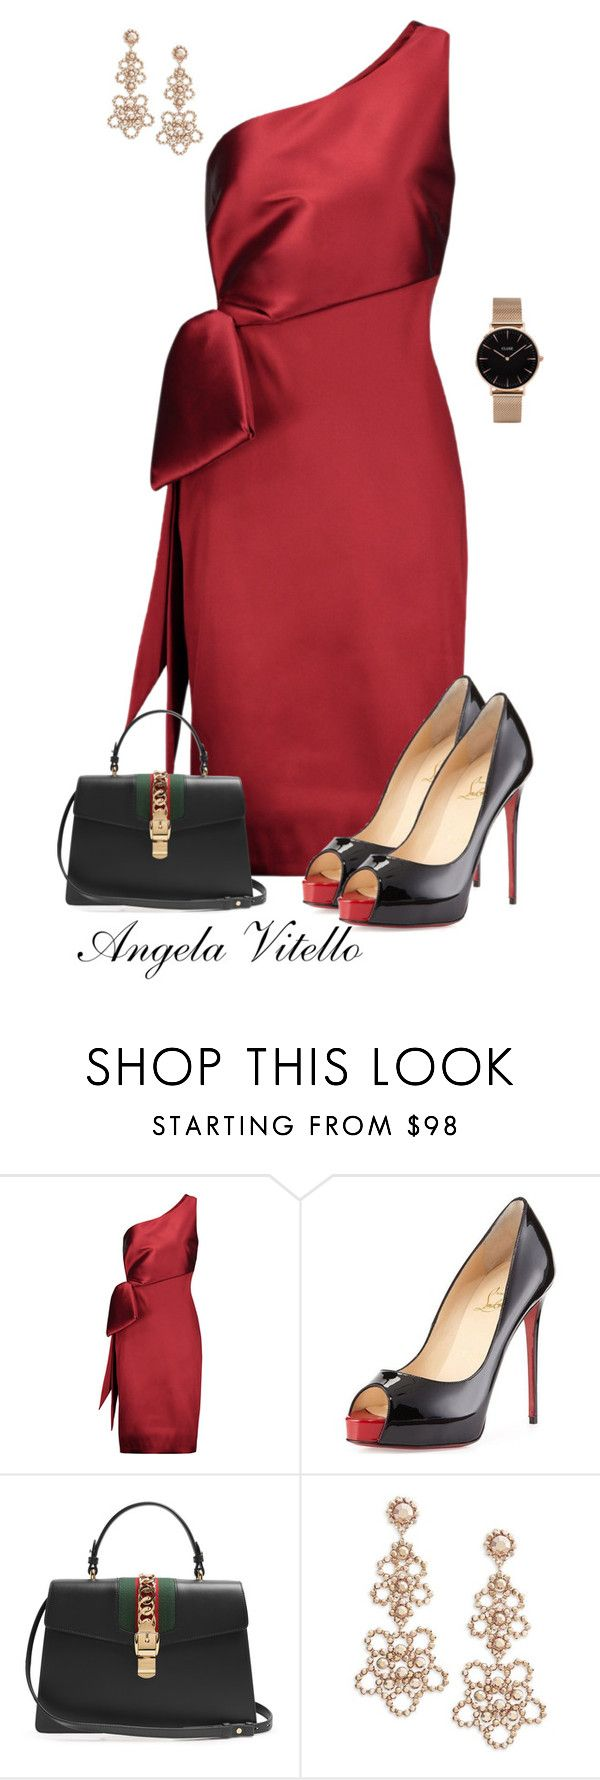 """Untitled #931"" by angela-vitello on Polyvore featuring NOIR Sachin + Babi, Christian Louboutin, Gucci, Kate Spade and CLUSE"